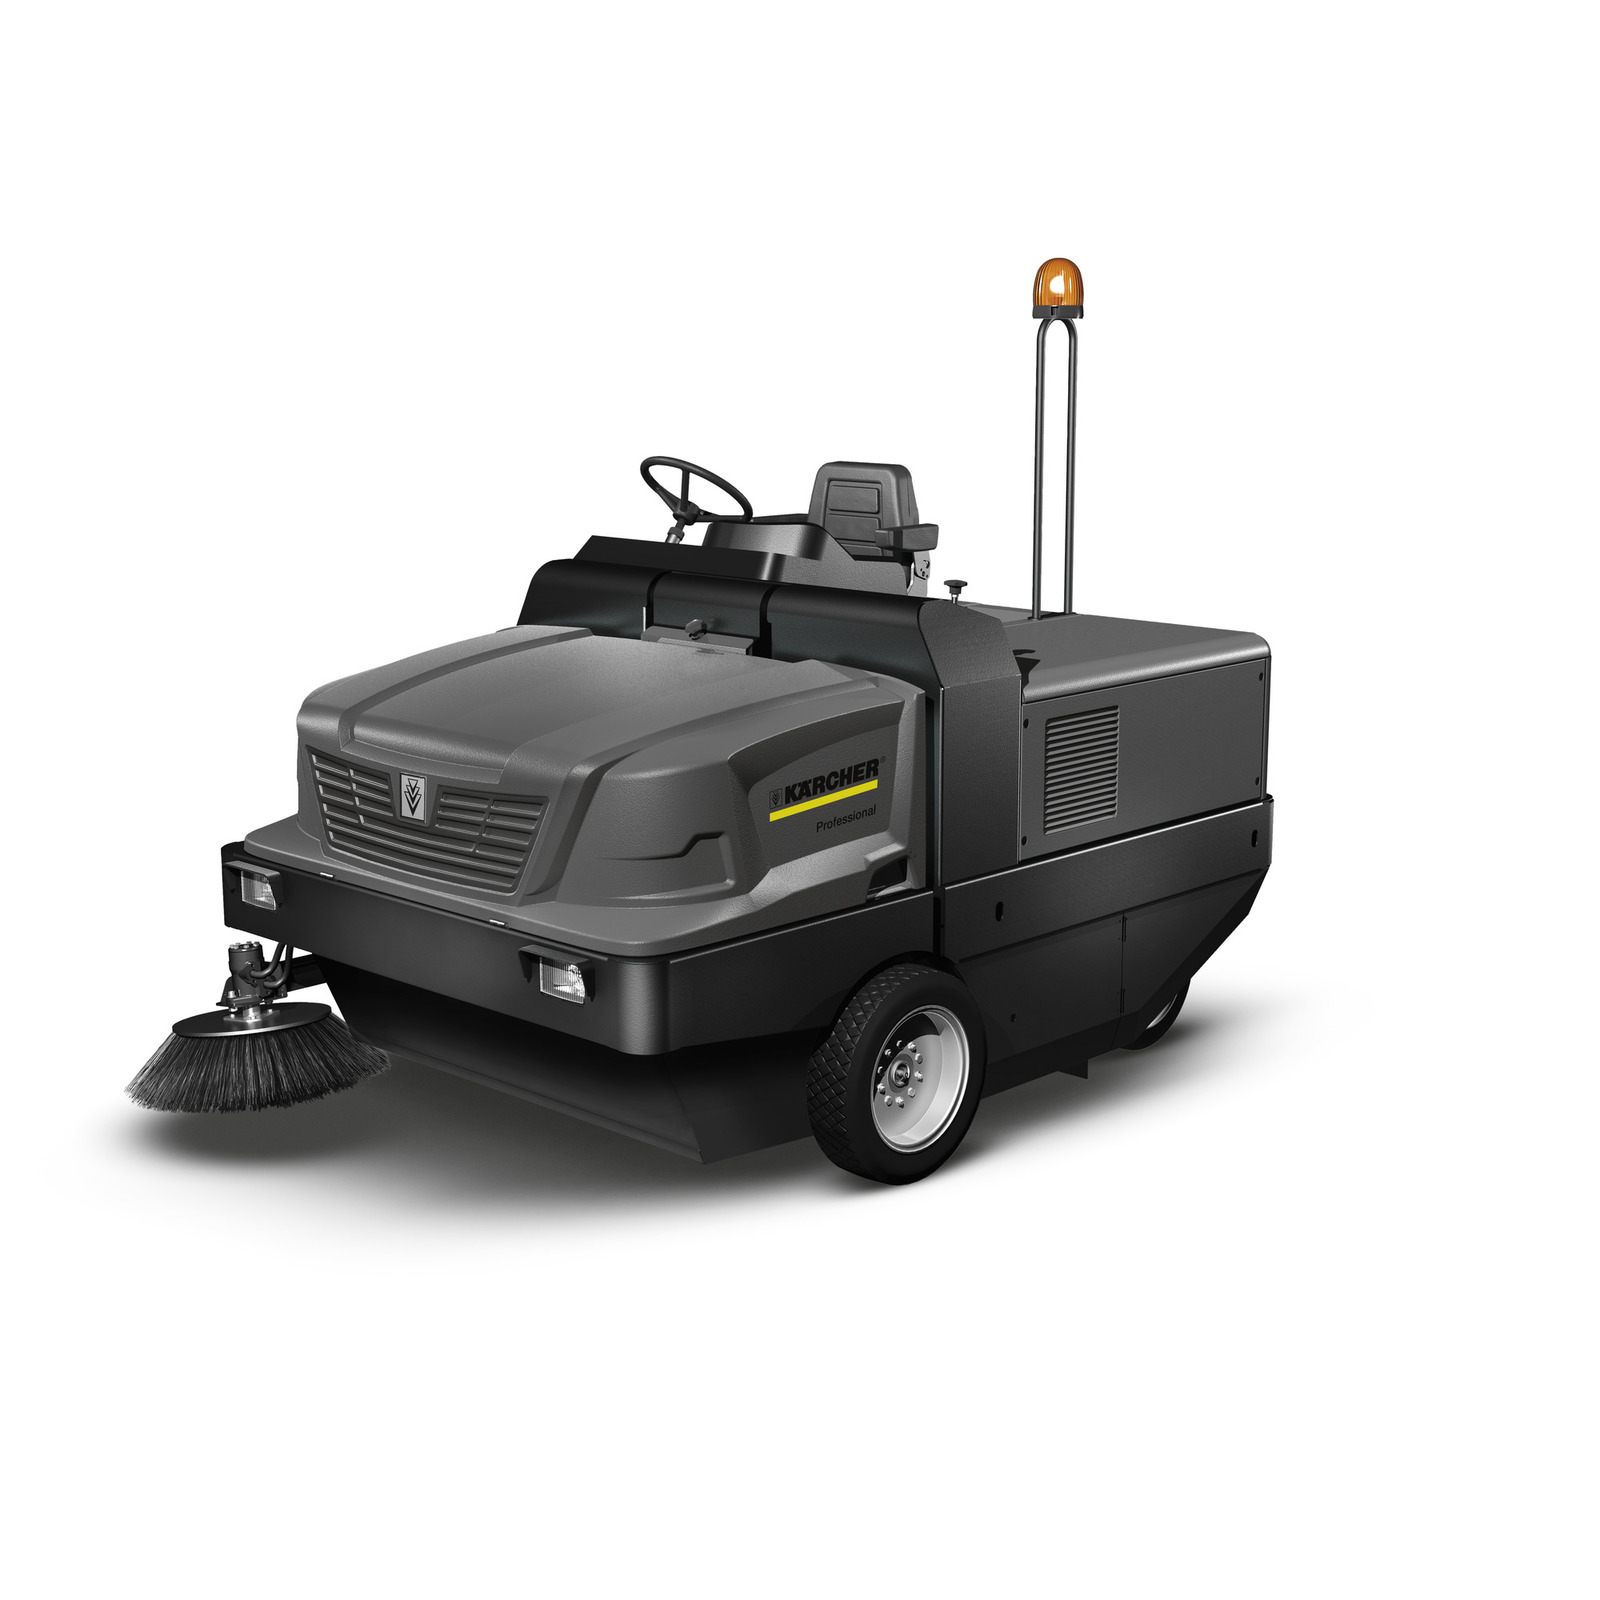 Karcher Ride on Sweepers KM 170/600 R D